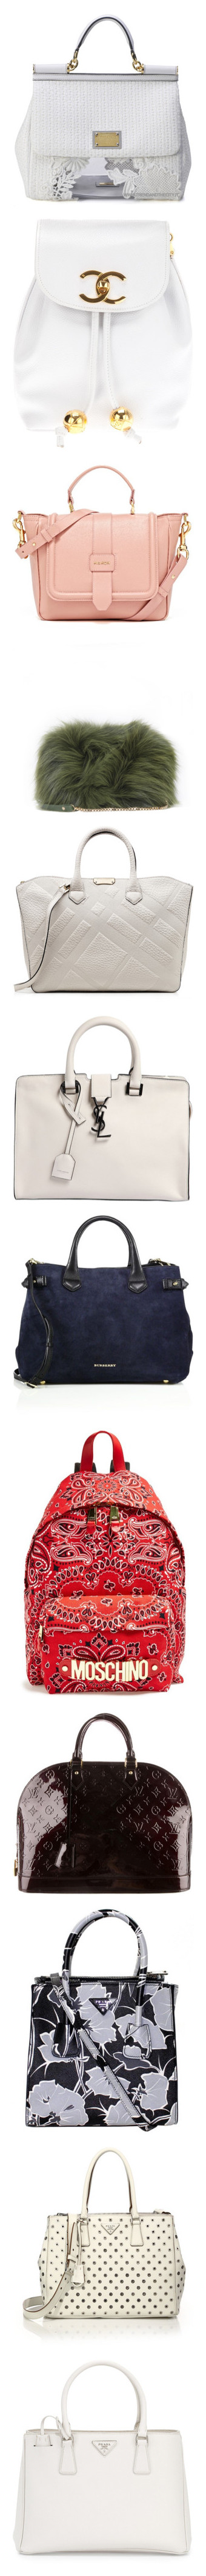 """Bags "" by dianahduncan ❤ liked on Polyvore featuring bags, handbags, borse, d&g, purse bag, dolce gabbana bag, jelly bag, handbags purses, jelly handbags and backpacks"